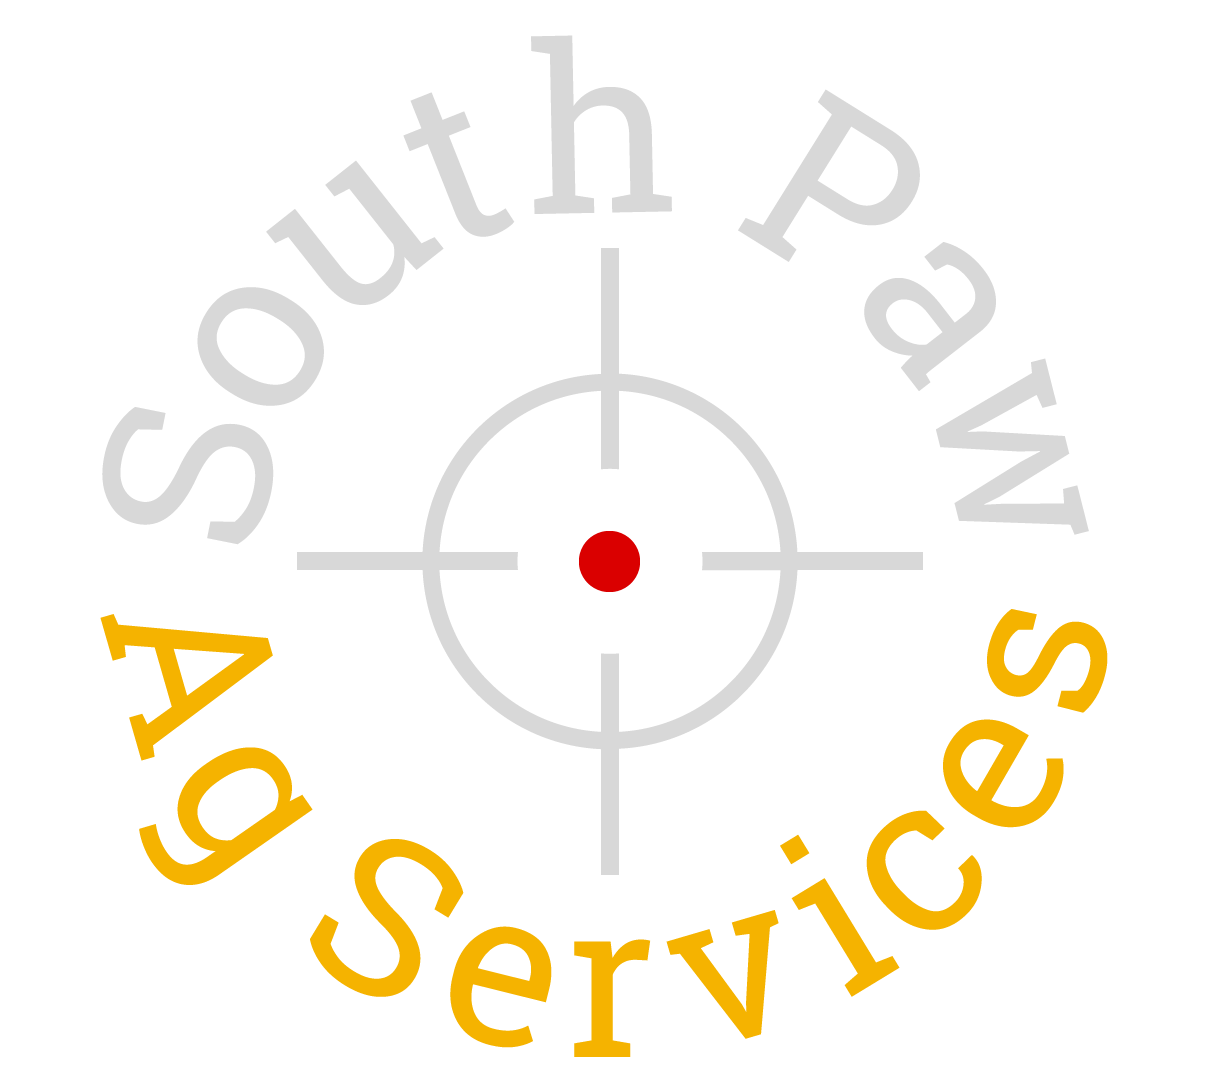 South Paw Ag Services